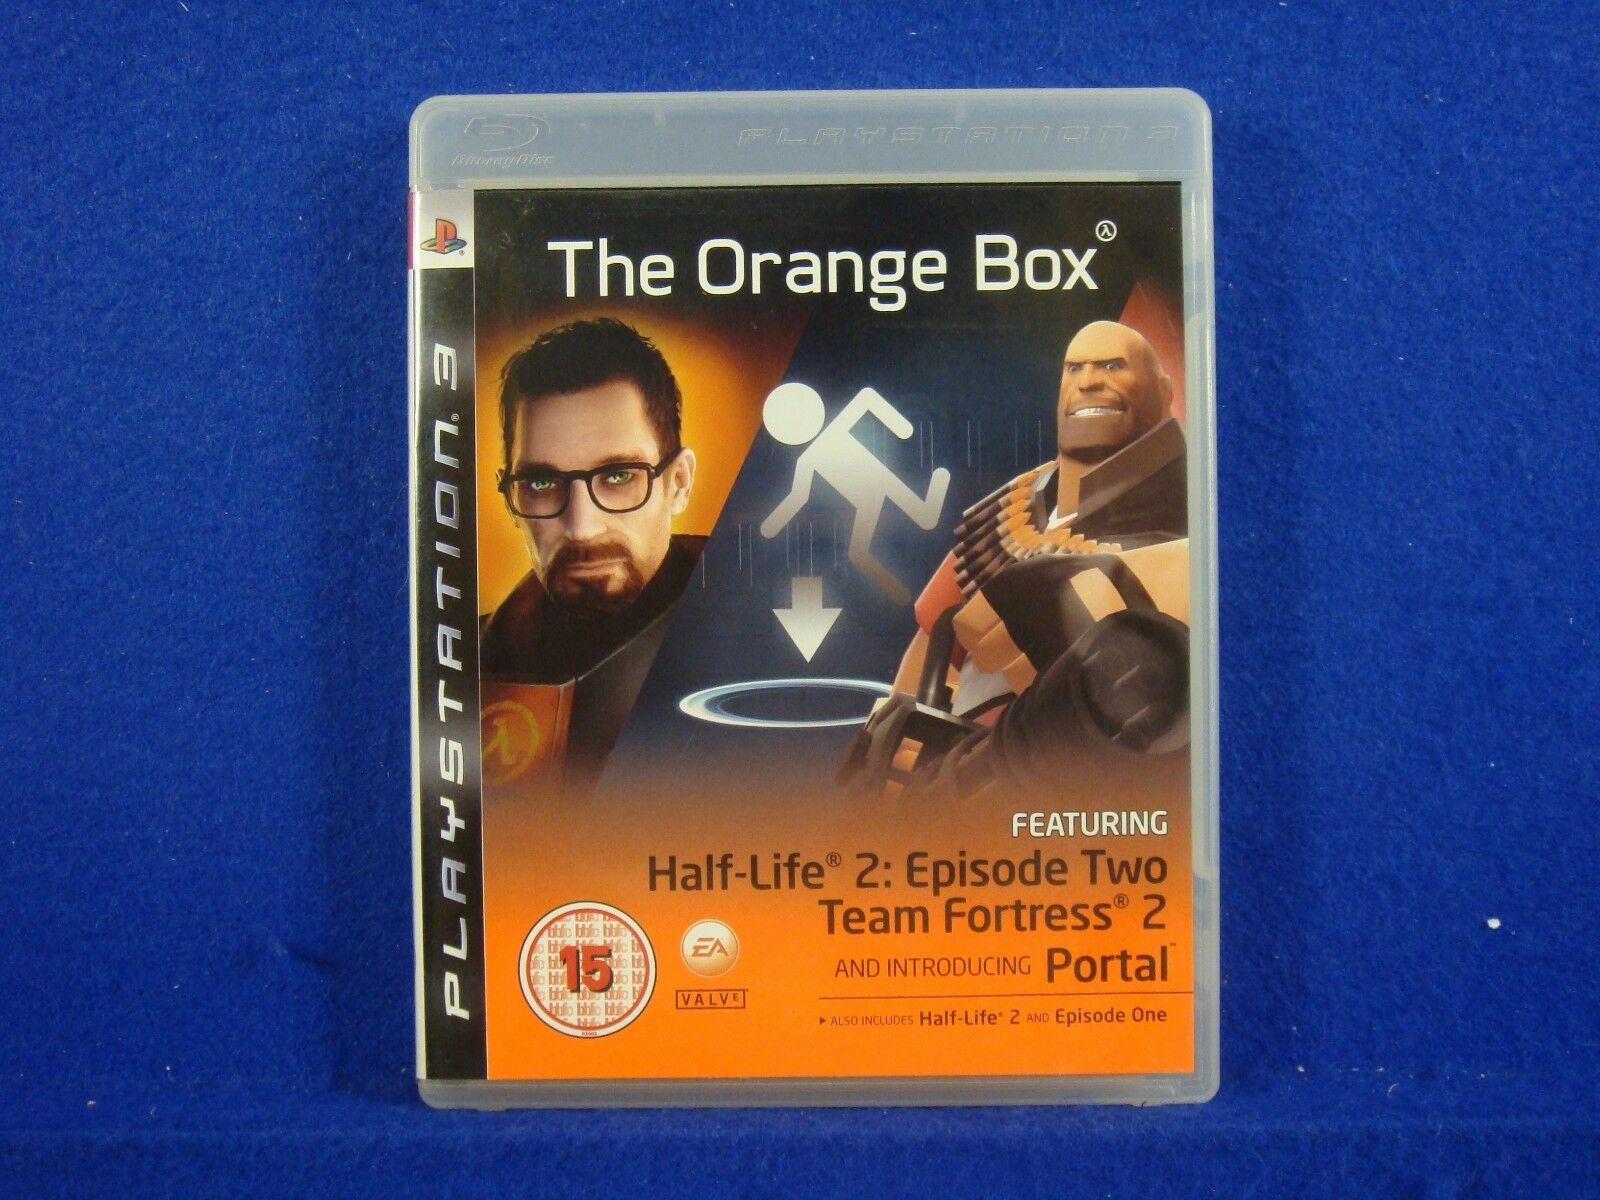 Ps3 Orange Box The Game Half Life 2 Region Free Pal English 2099 Ps4 Destiny Forsaken Legendary Collection 3 1 Of 1only Available